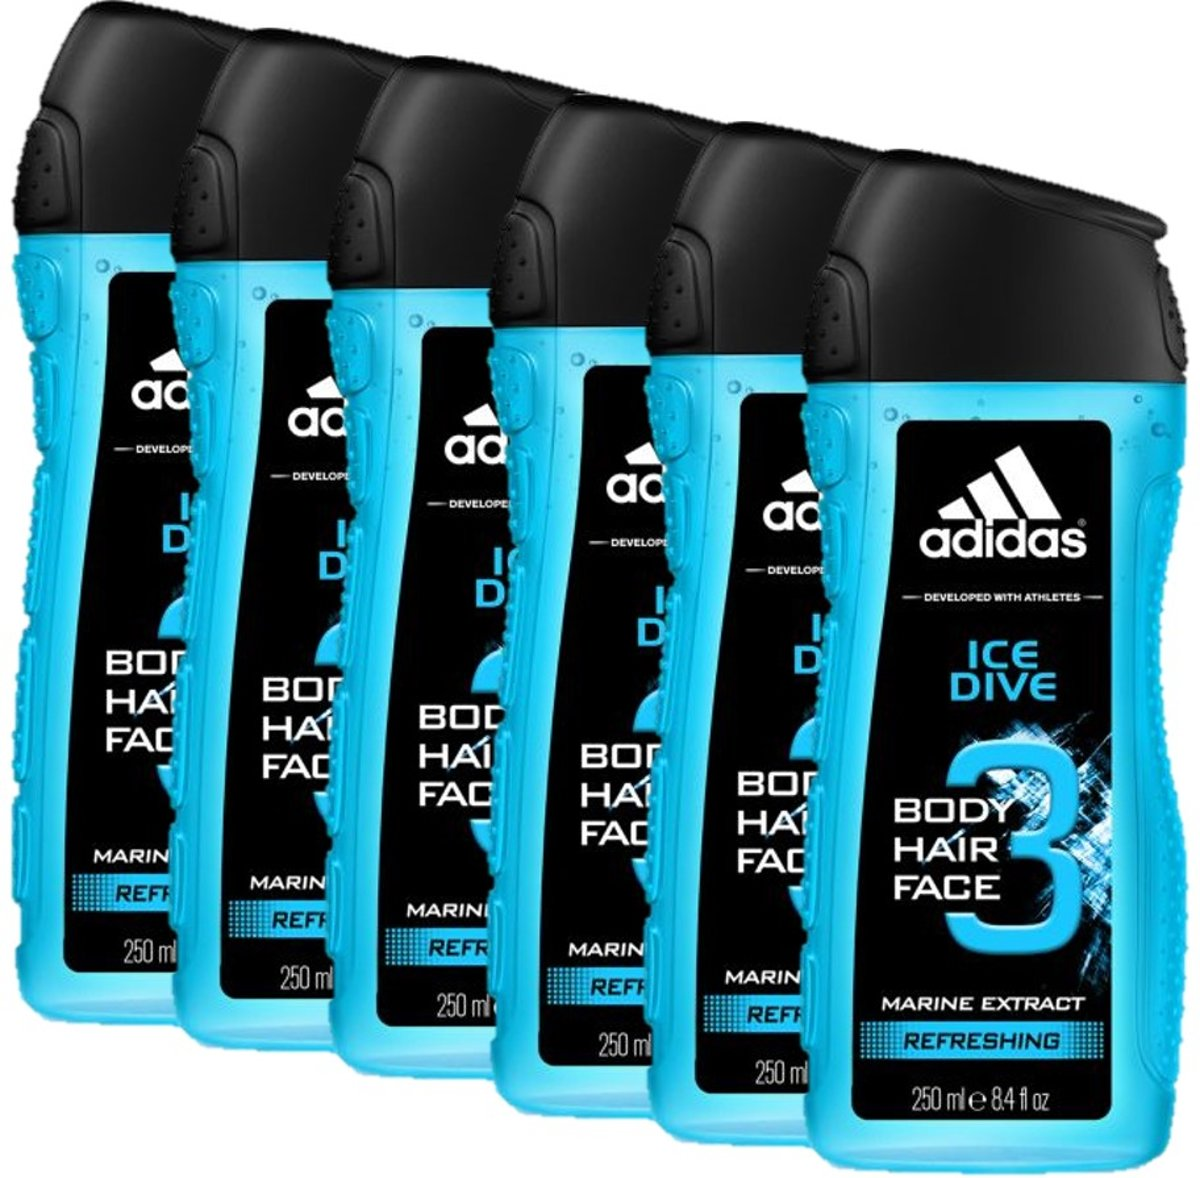 Adidas Douchegel 3 in 1 Ice Dive 6 x 250 ml